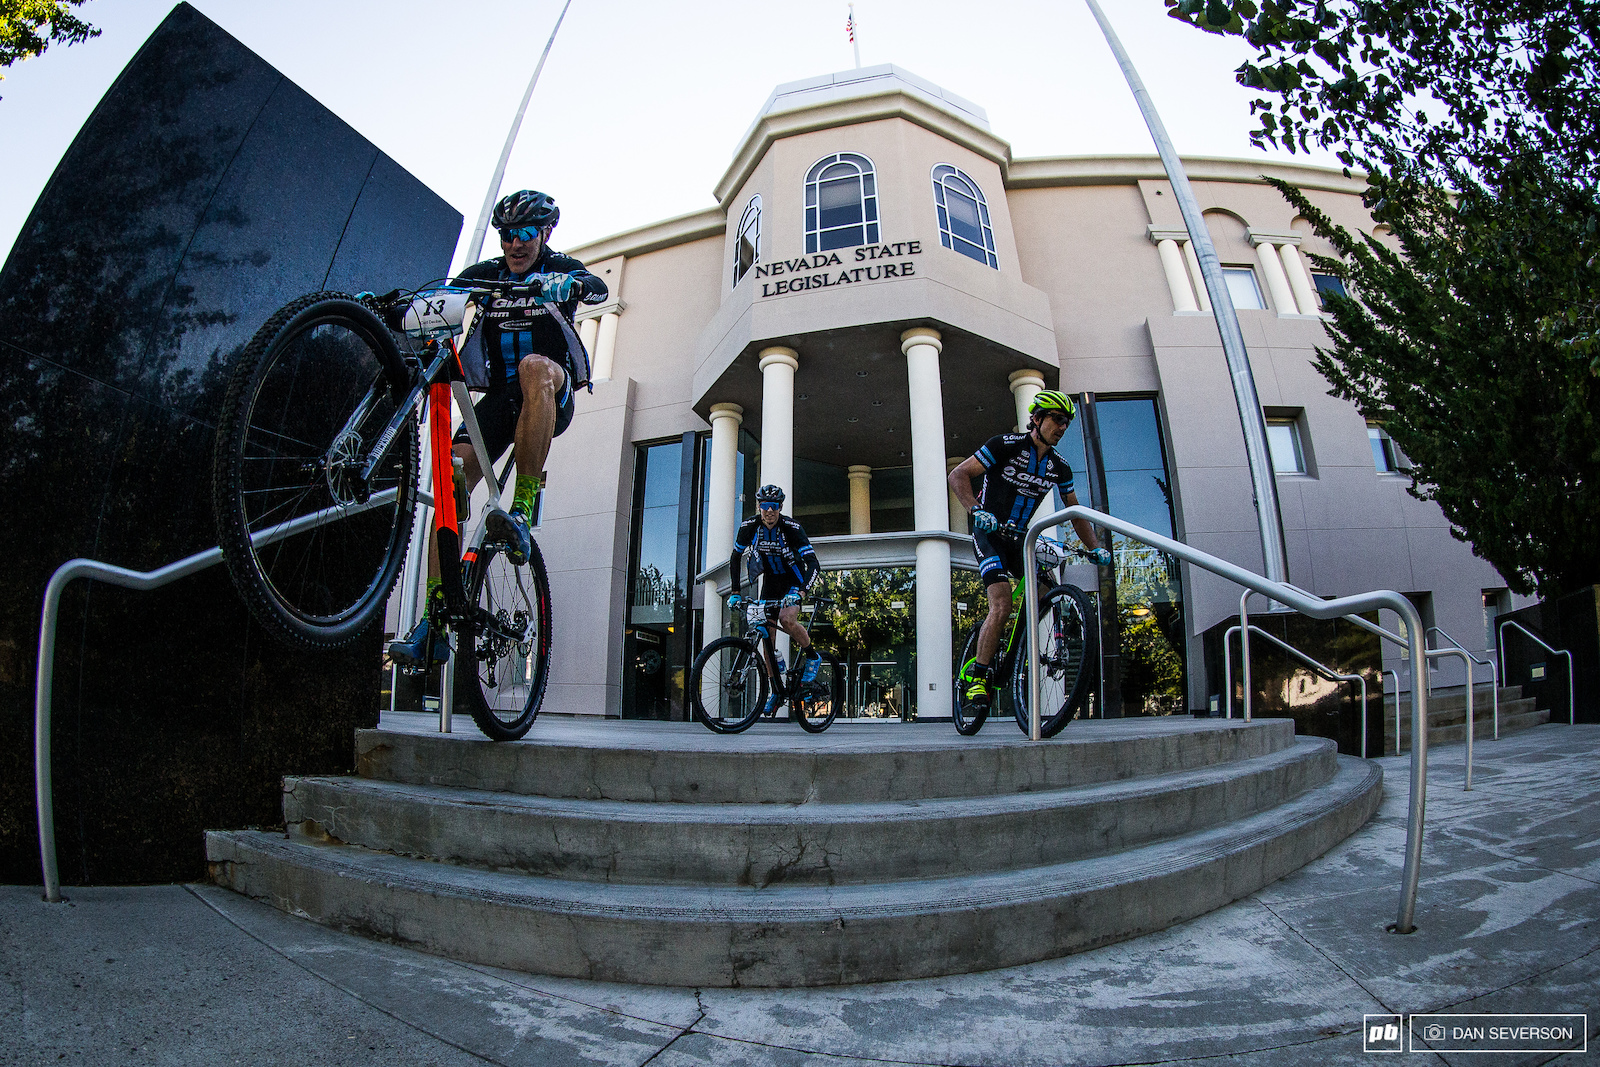 This is what happens when you give mountain bikers the key to the city. Giant Factory riders Carl Decker Adam Craig and Stephan Davoust wreak havoc on the steps of the State Legislature building.